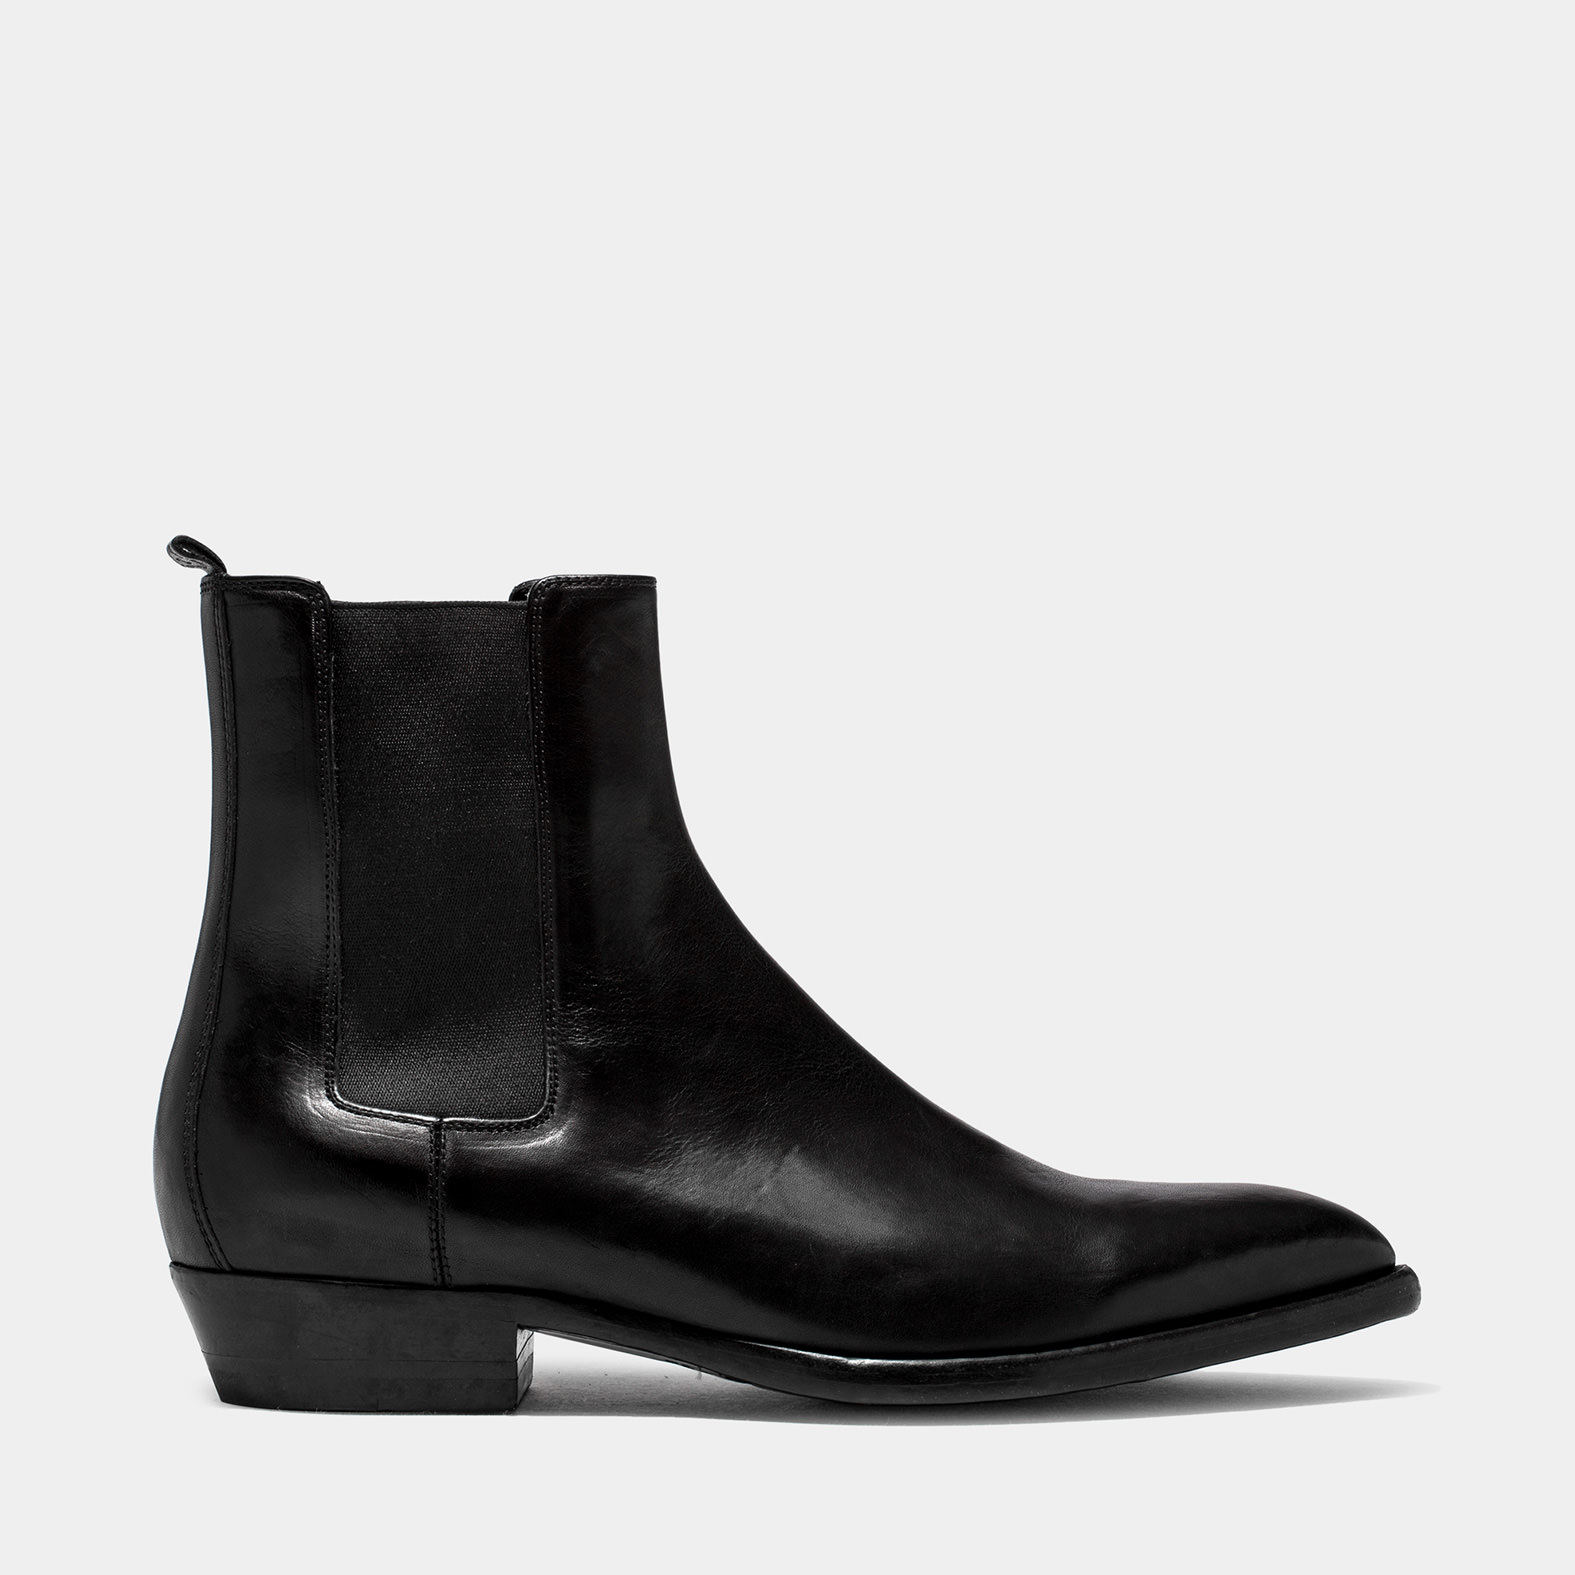 BUTTERO: FARGO ANKLE BOOTS IN BLACK WASHED LEATHER